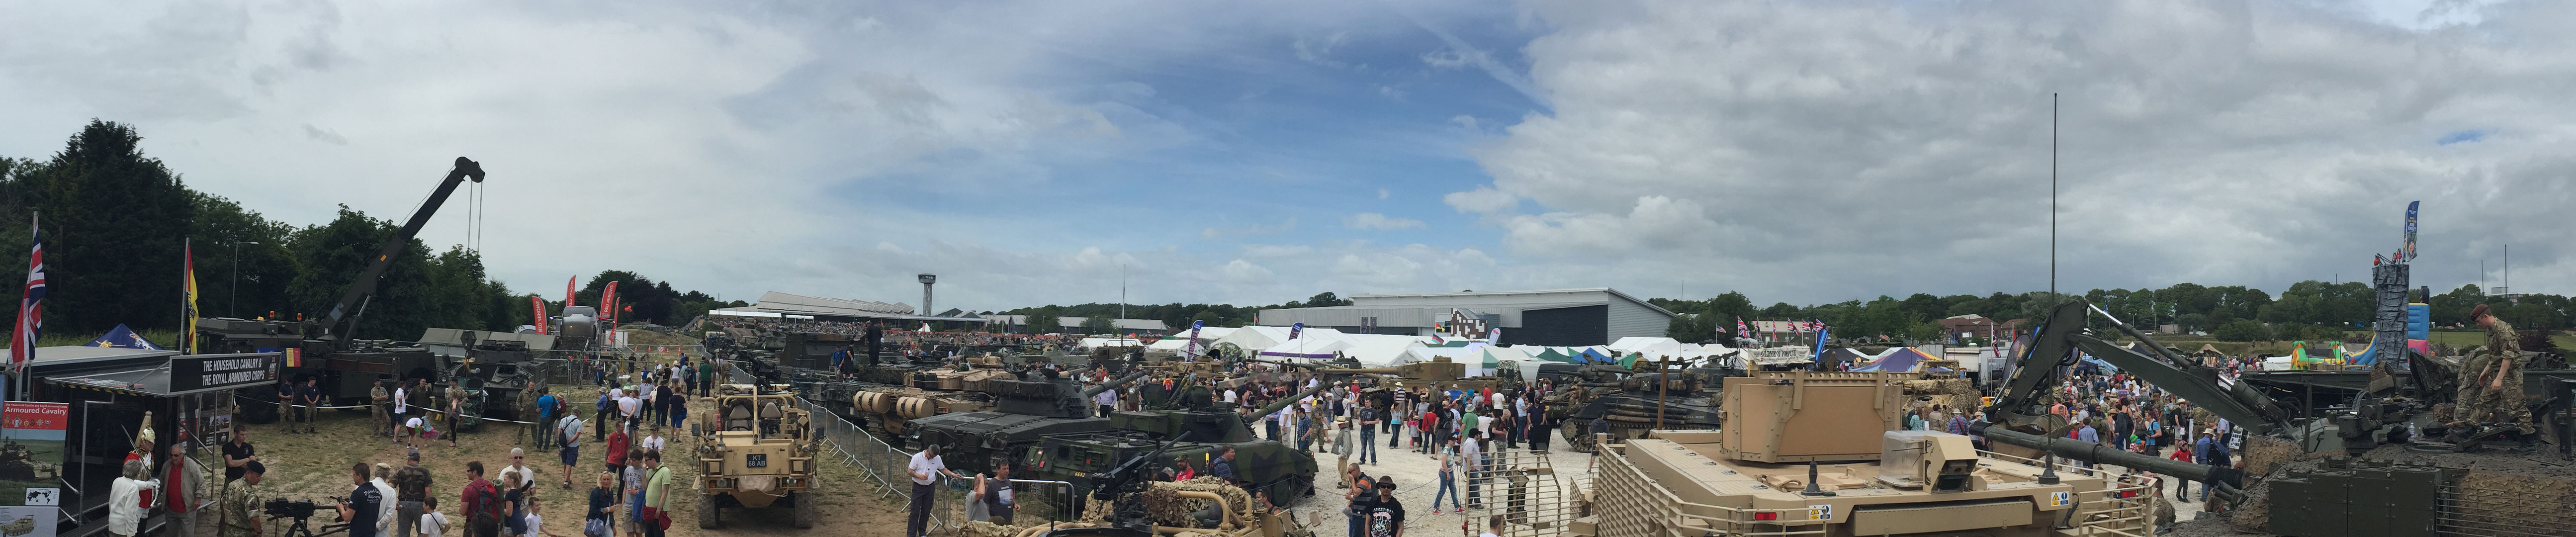 The Tank Museum Show Ground at Bovington, Dorset, UK